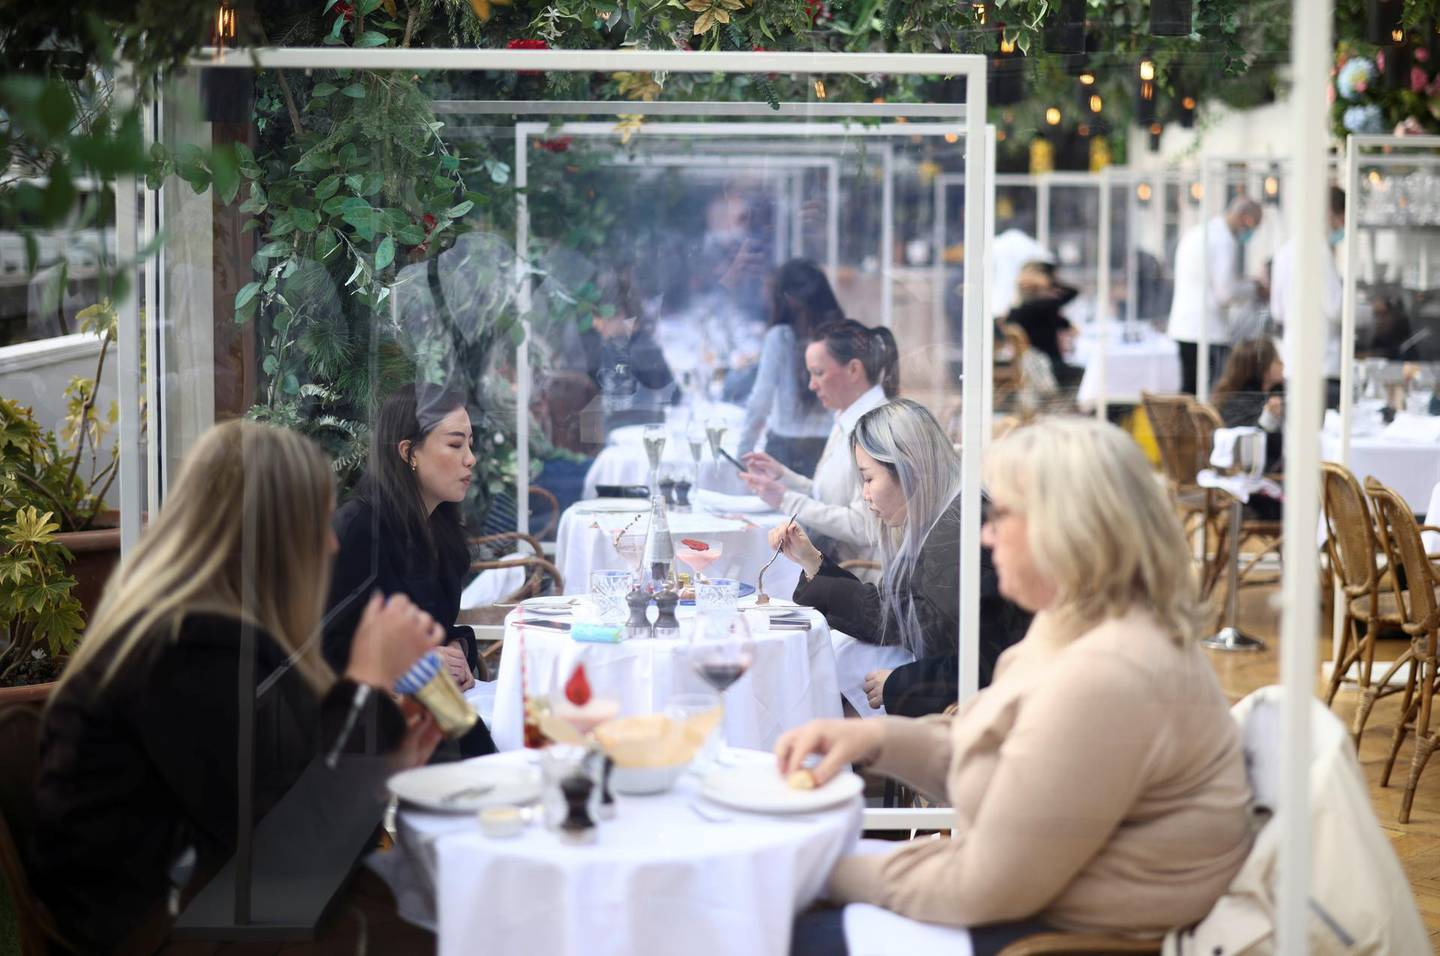 People sit in a restaurant on the roof of the Selfridges department store on Oxford street, as the coronavirus disease (COVID-19) restrictions ease, in London, Britain April 12, 2021. REUTERS/Henry Nicholls